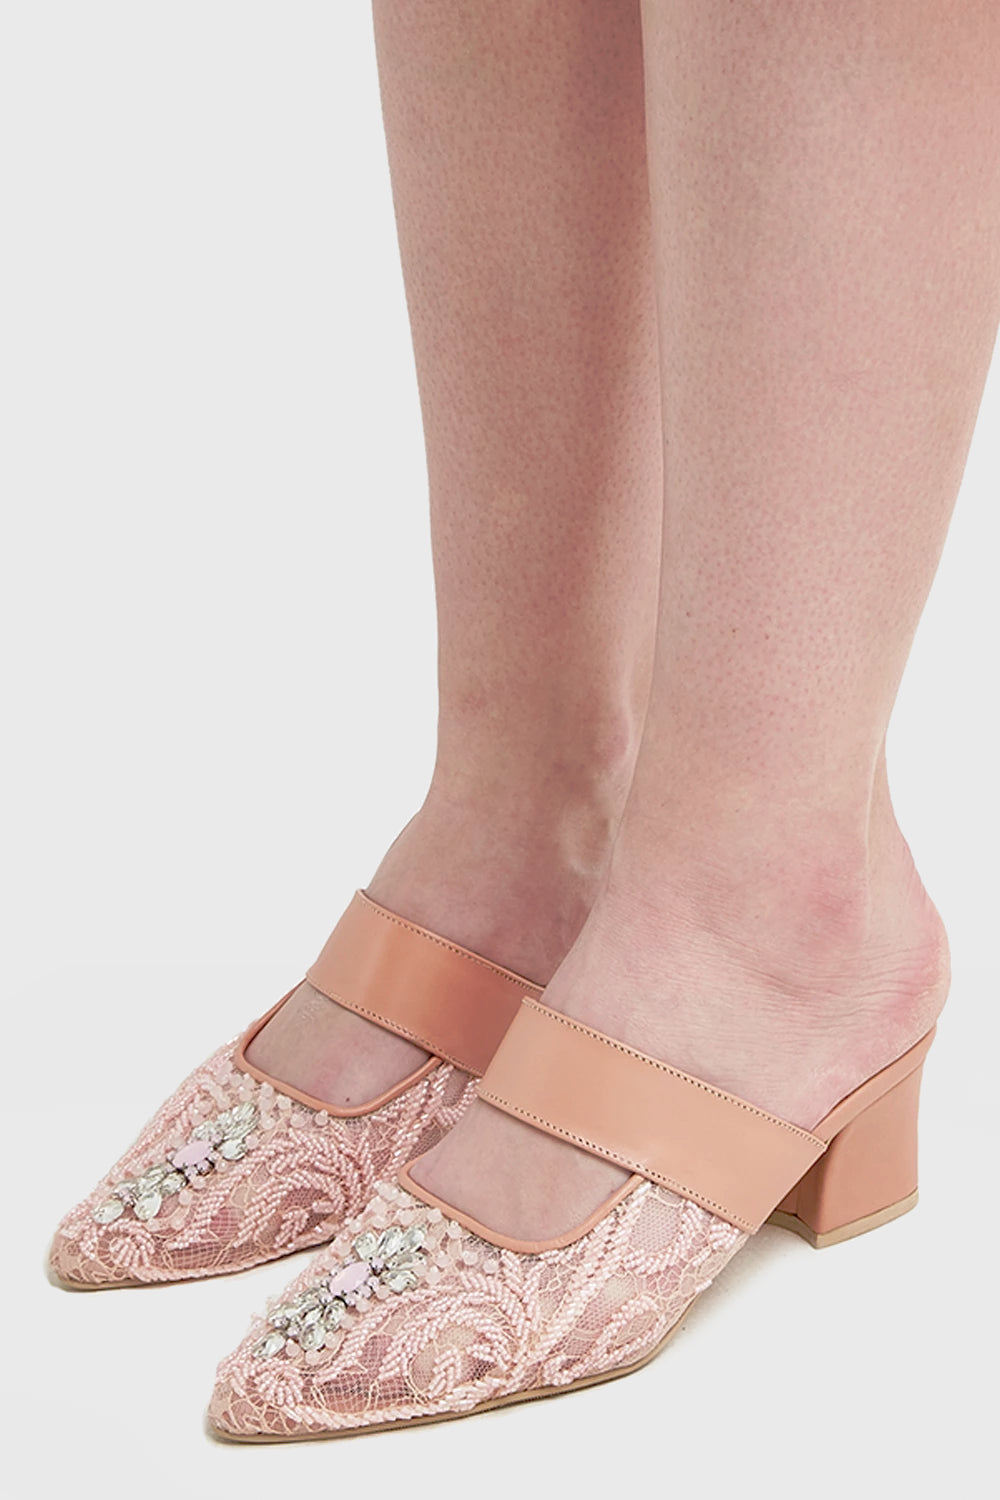 Sendy Shoes in Peach